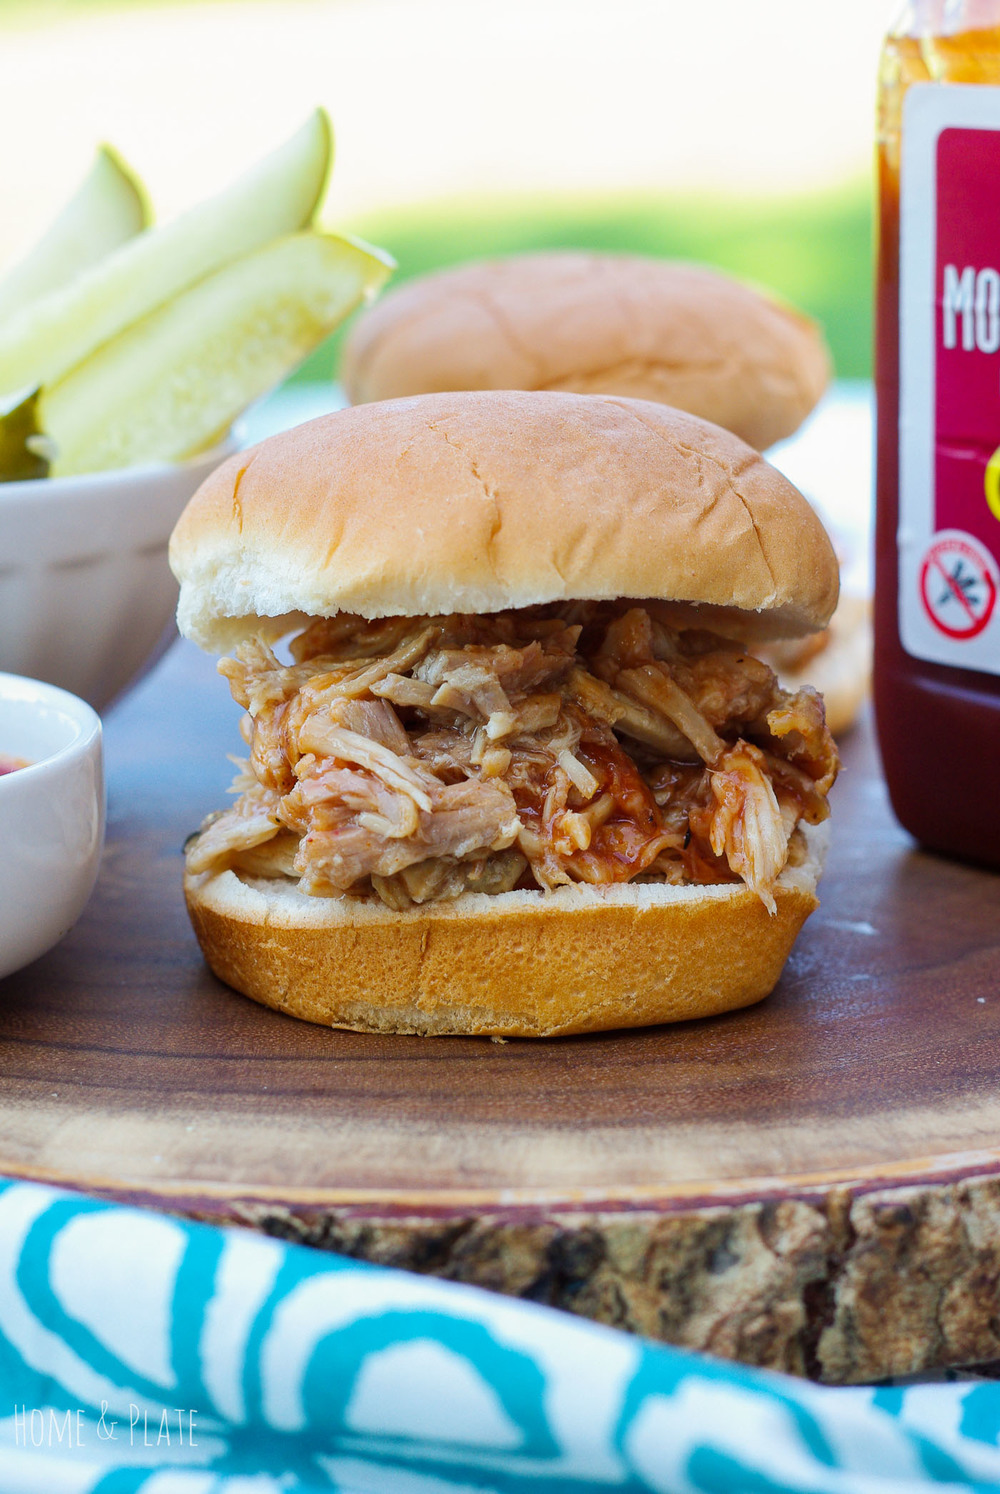 Barbecued Pulled Pork Sandwiches | www.homeandplate.com | Tender pulled pork smothered in sweet barbecue sauce piled high on a bun is the ultimate sandwich.